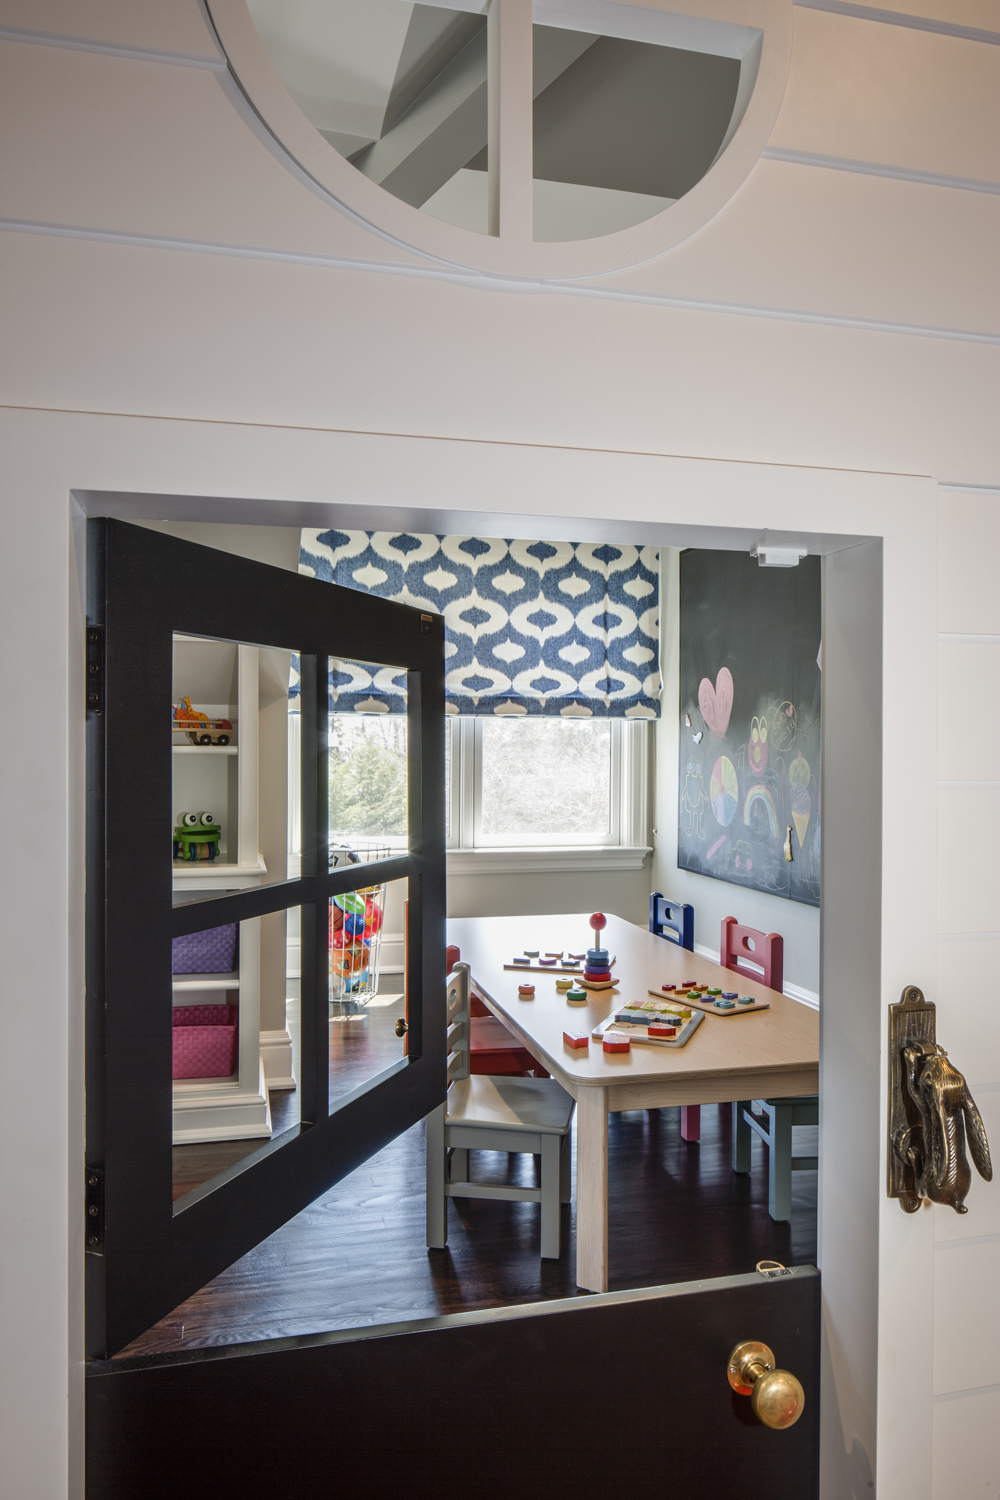 Chic-colonial-playroom-dutch-door-old-greenwich-ct-interior-w.jpg